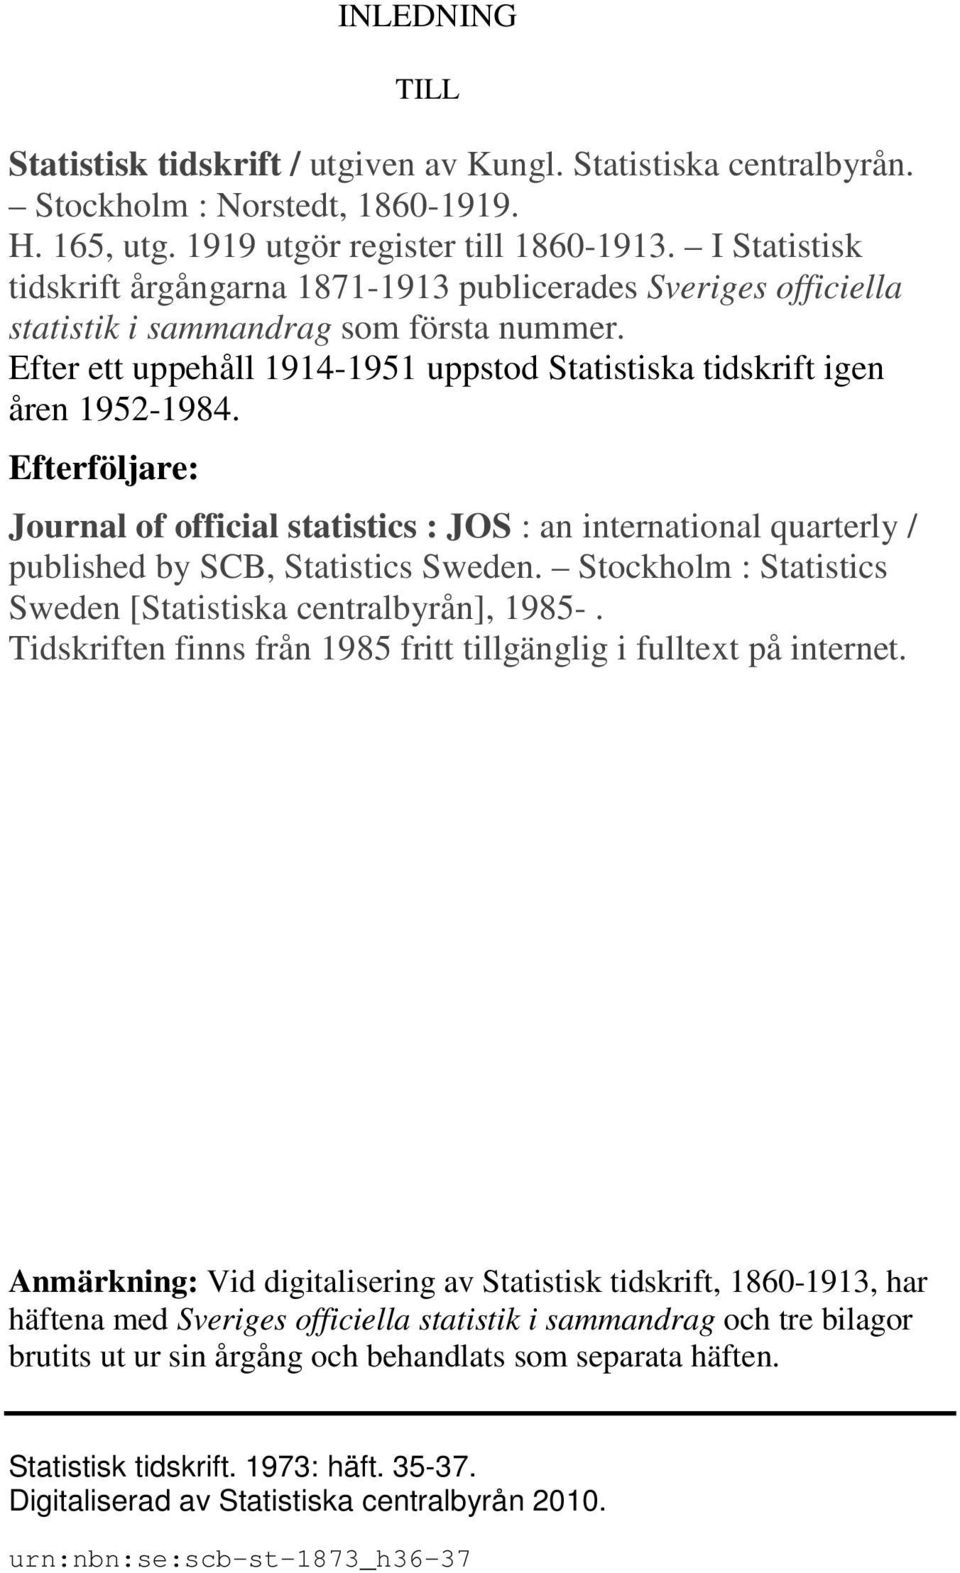 Efterföljare: Journal of official statistics : JOS : an international quarterly / published by SCB, Statistics Sweden. Stockholm : Statistics Sweden [Statistiska centralbyrån], 1985-.